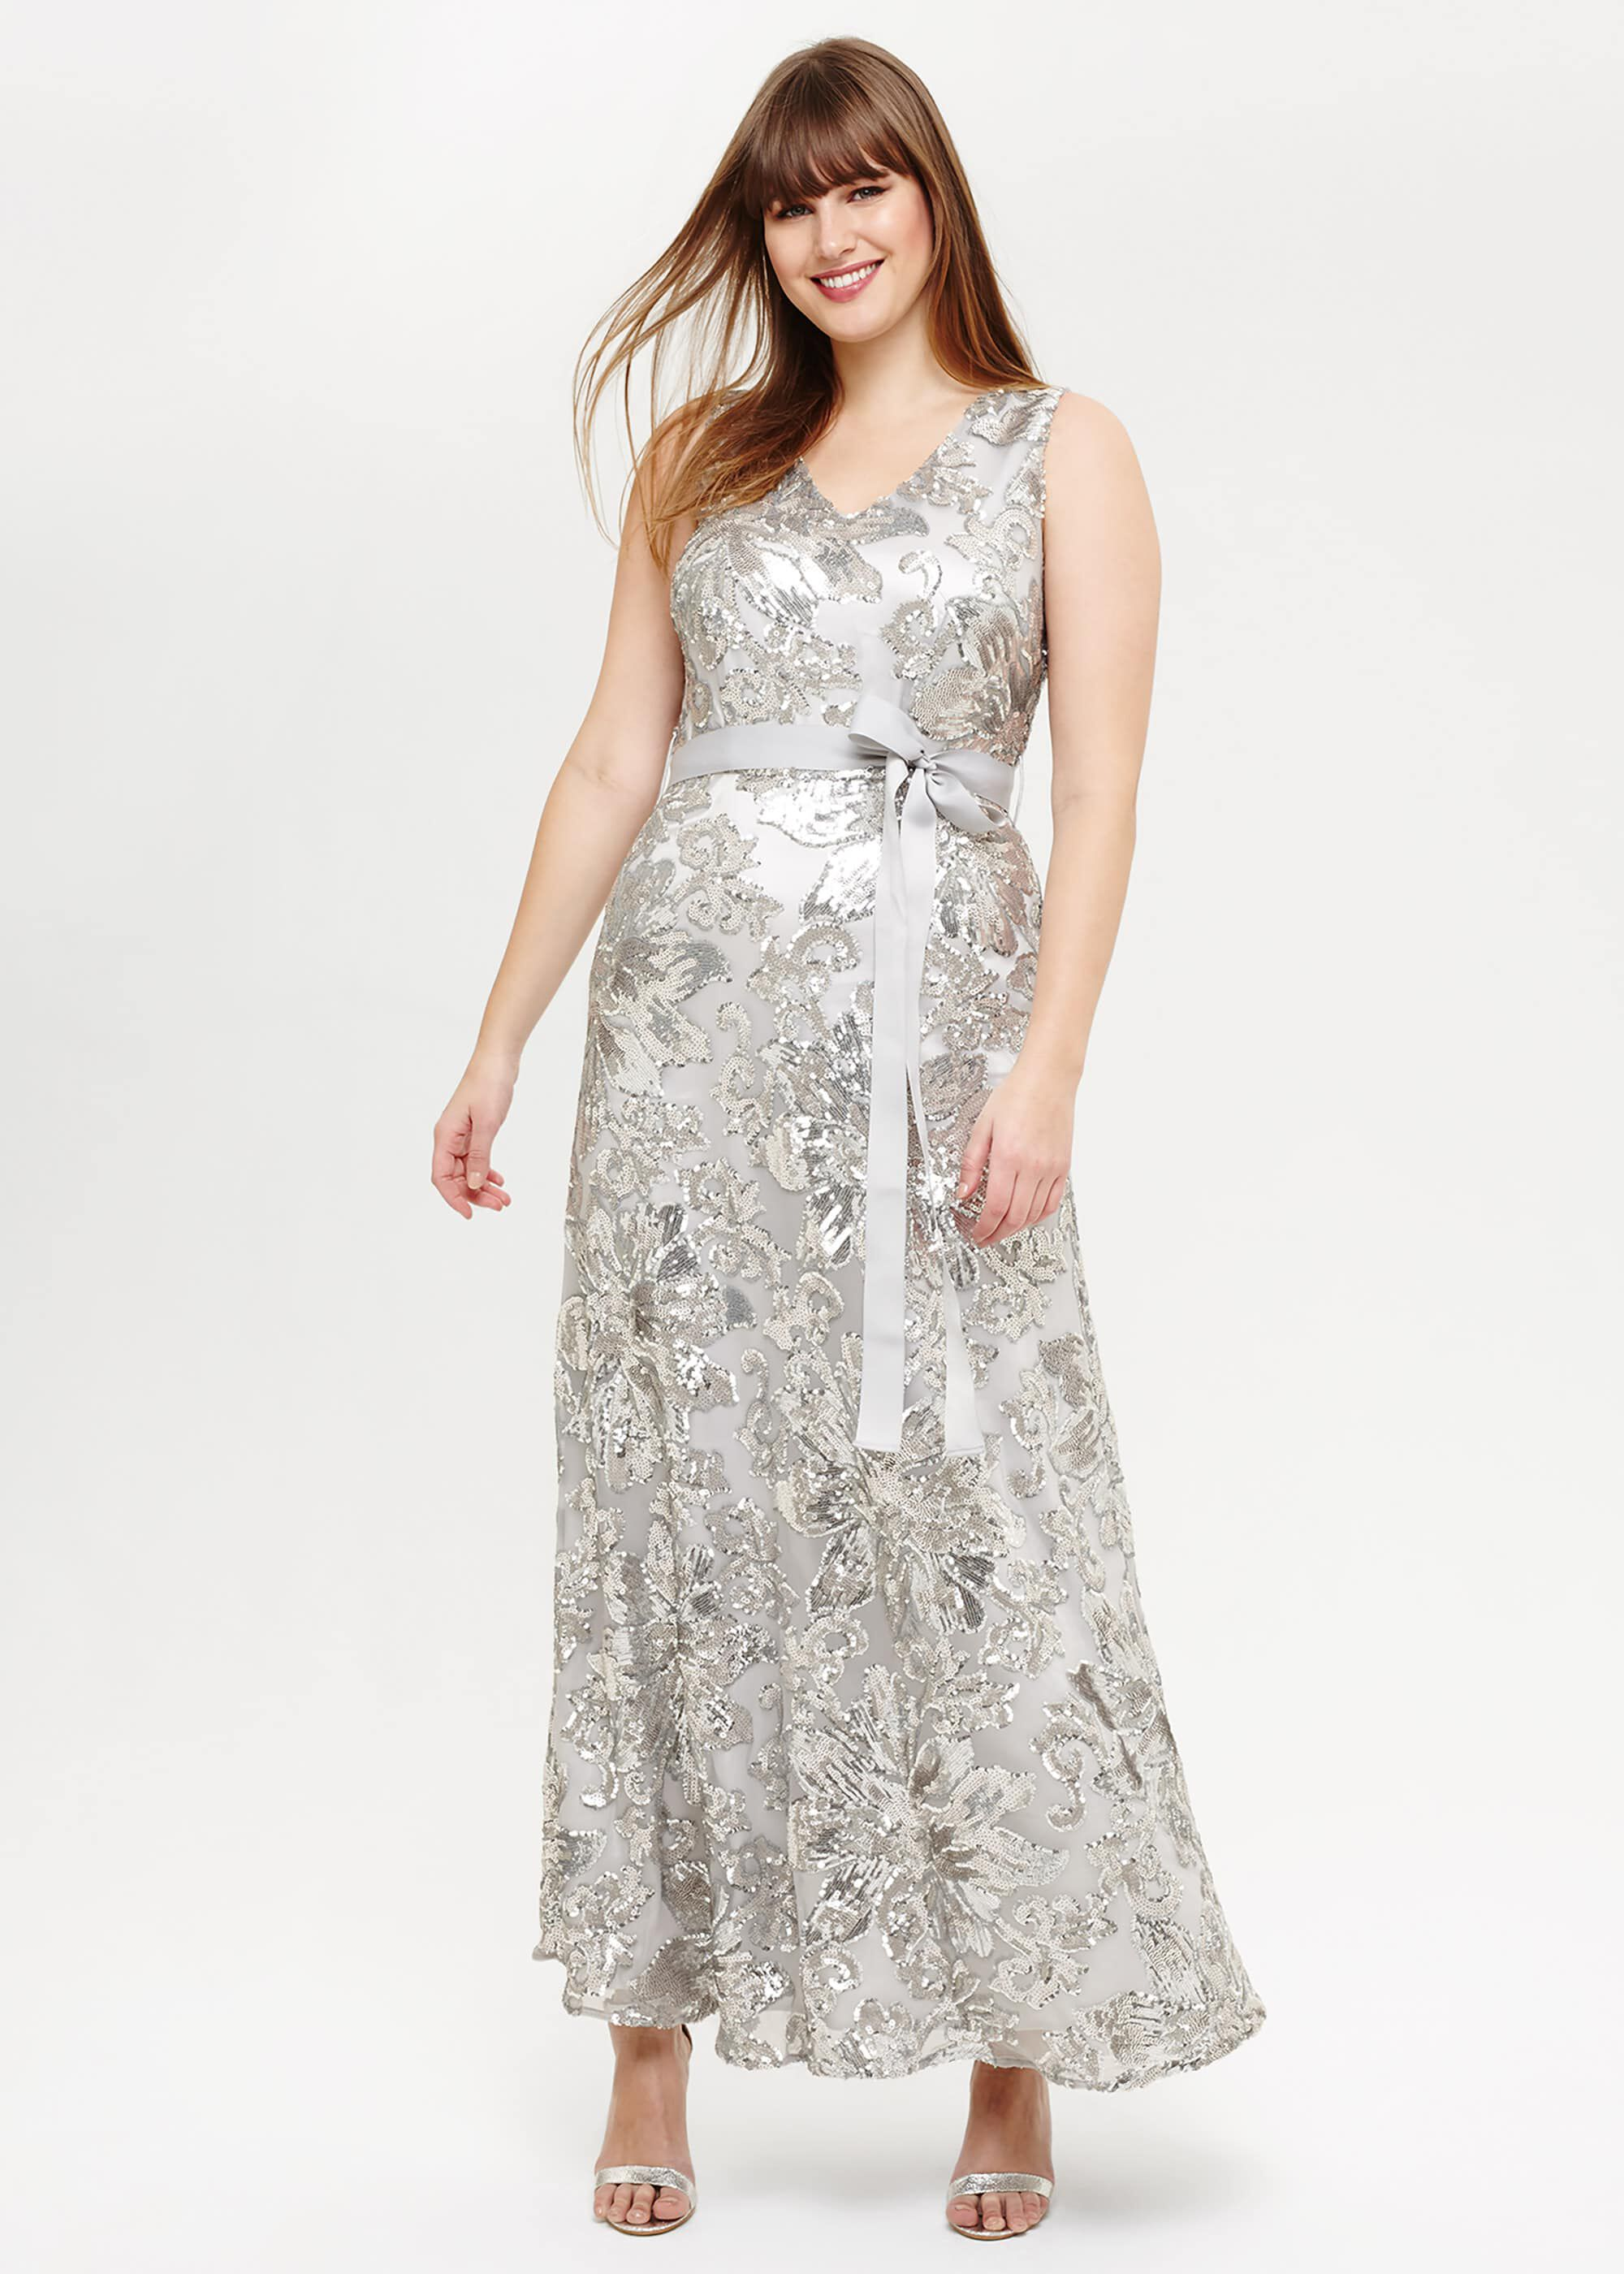 Studio 8 Venus Maxi Dress, Metallic, Maxi, Occasion Dress